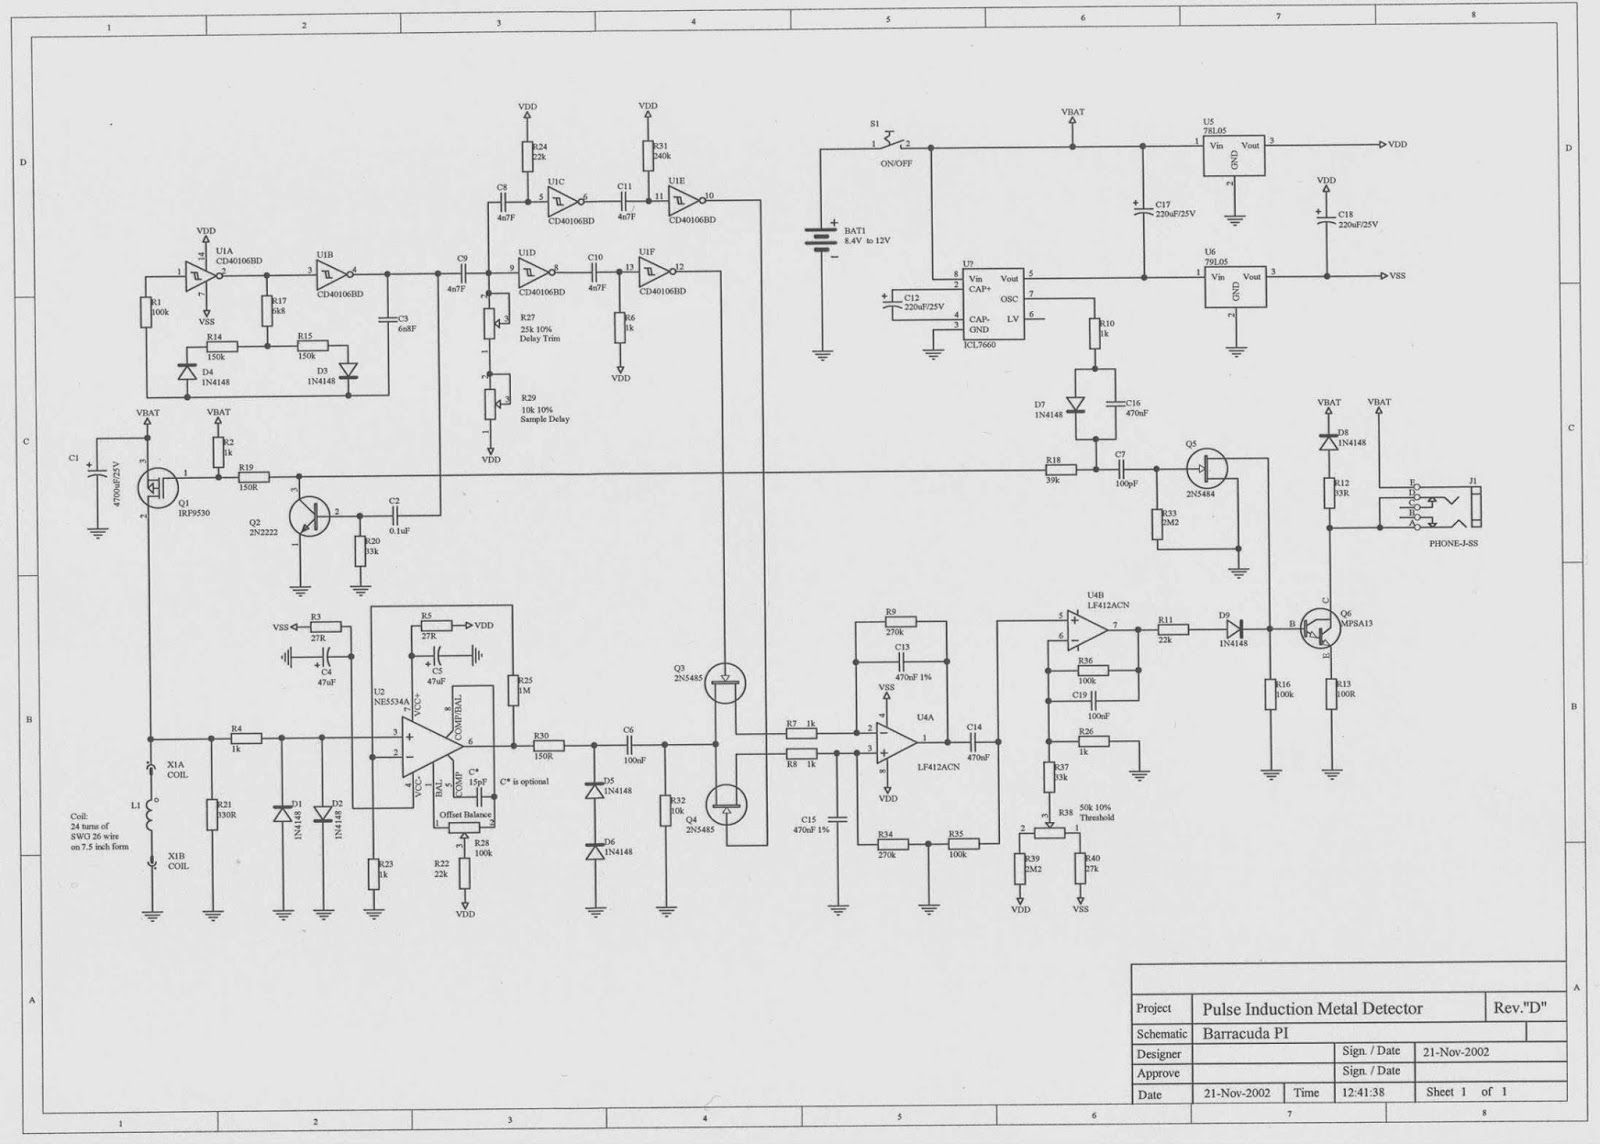 Pulse Induction Detector Schematic